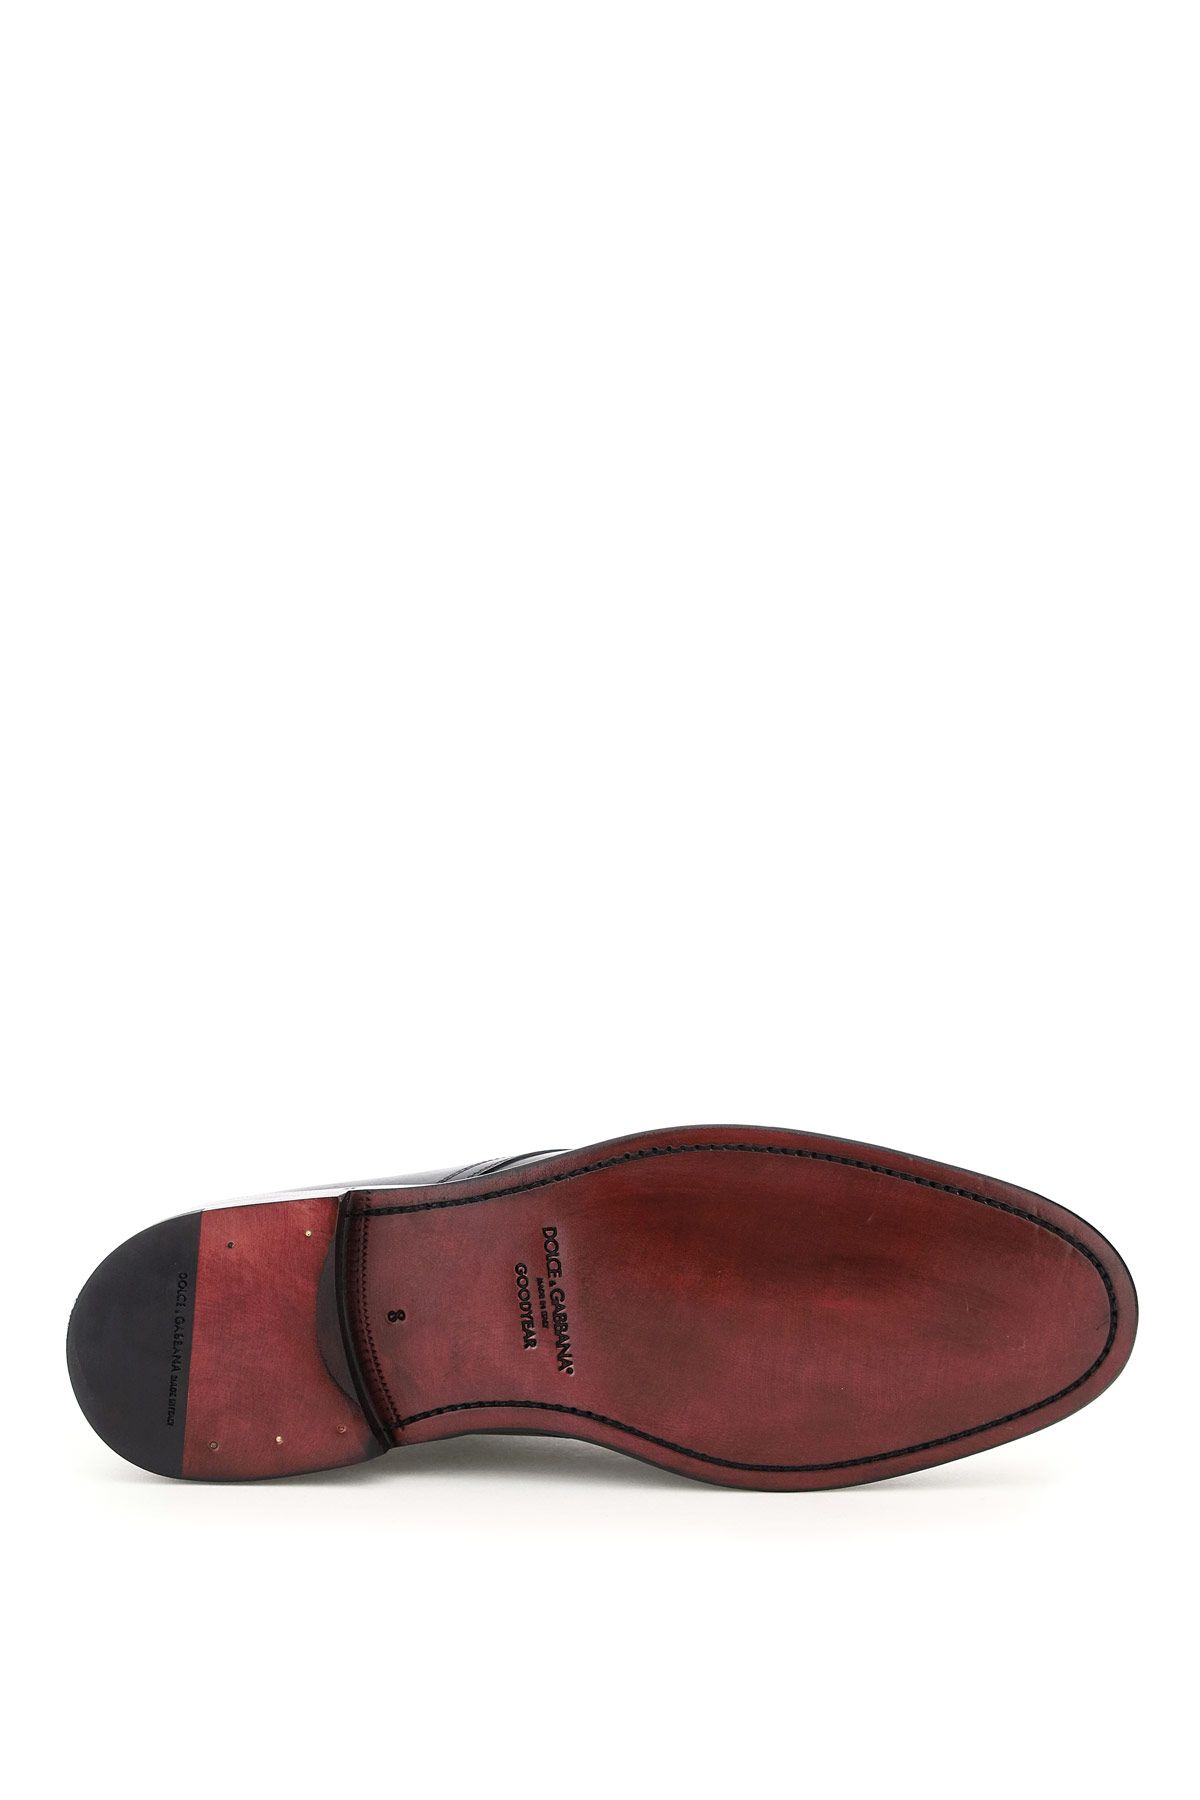 dolce & gabbana shoes men giotto leather lace-up shoes